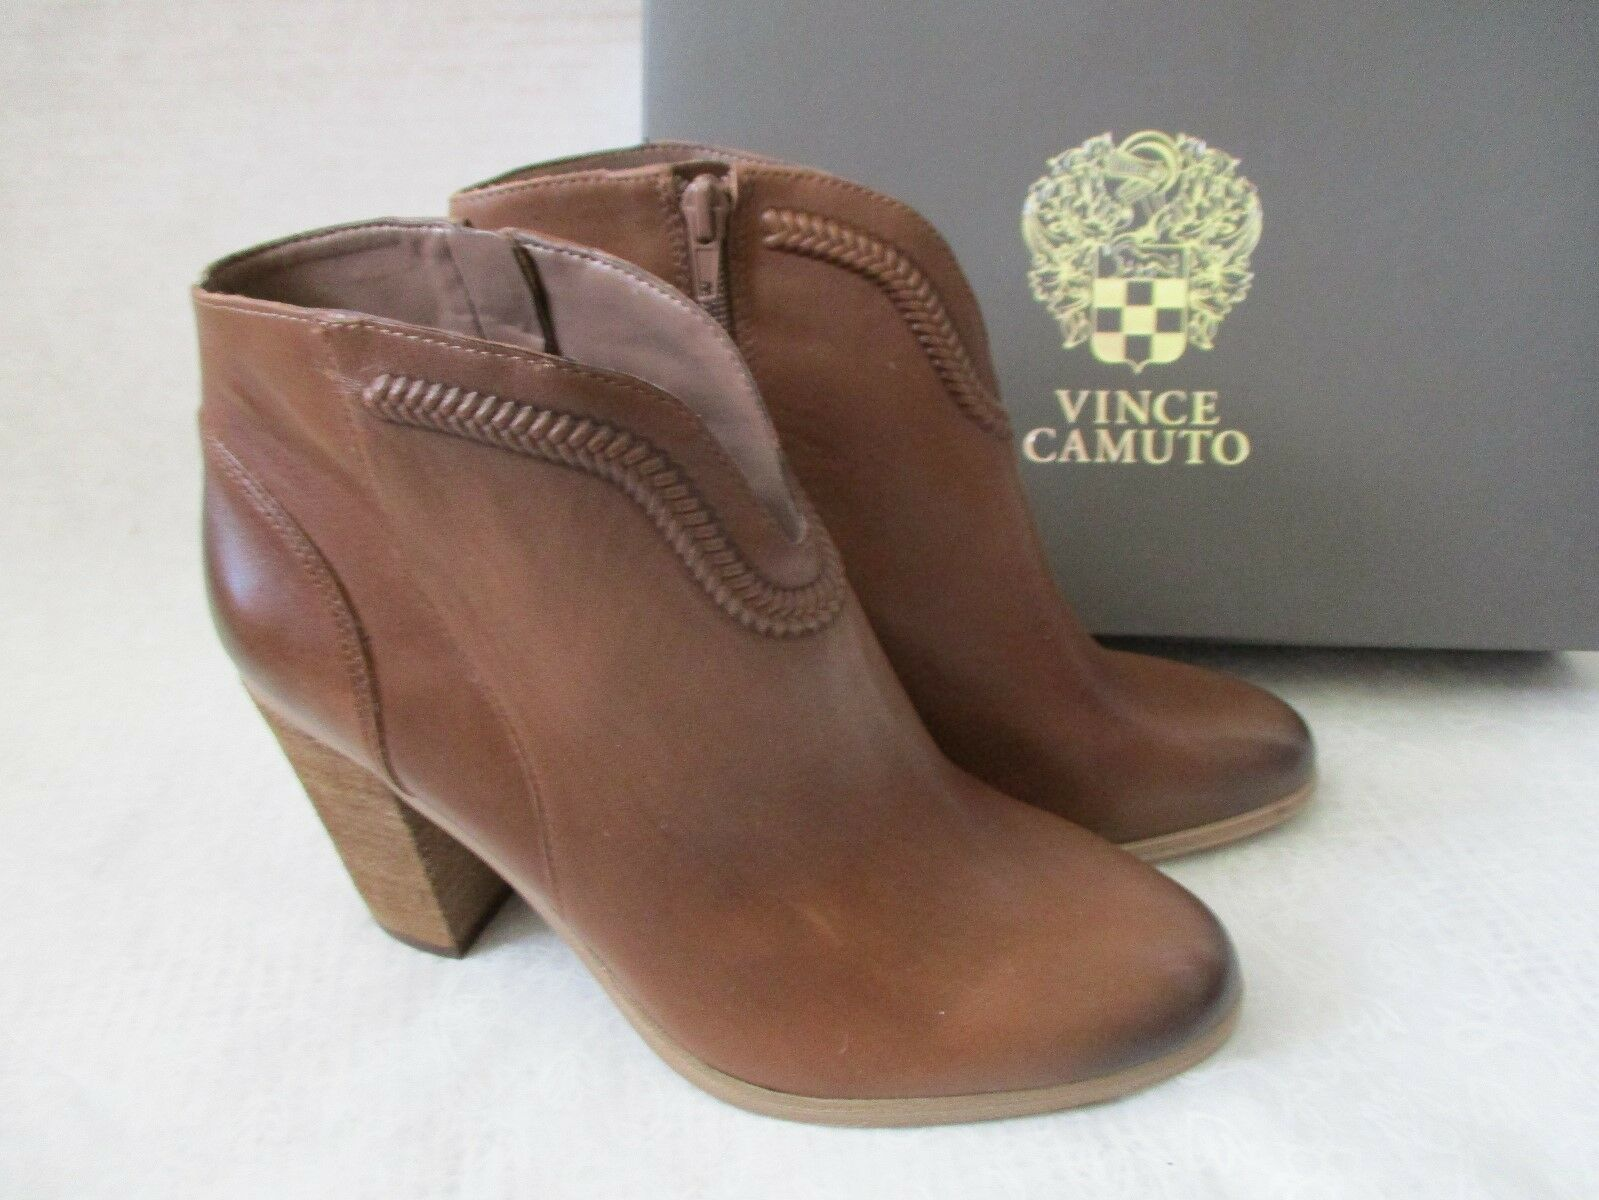 VINCE CAMUTO 100% LEATHER MEDIUM BROWN ANKLE ZIP UP Stiefel SIZE 9 M - NEW W BOX